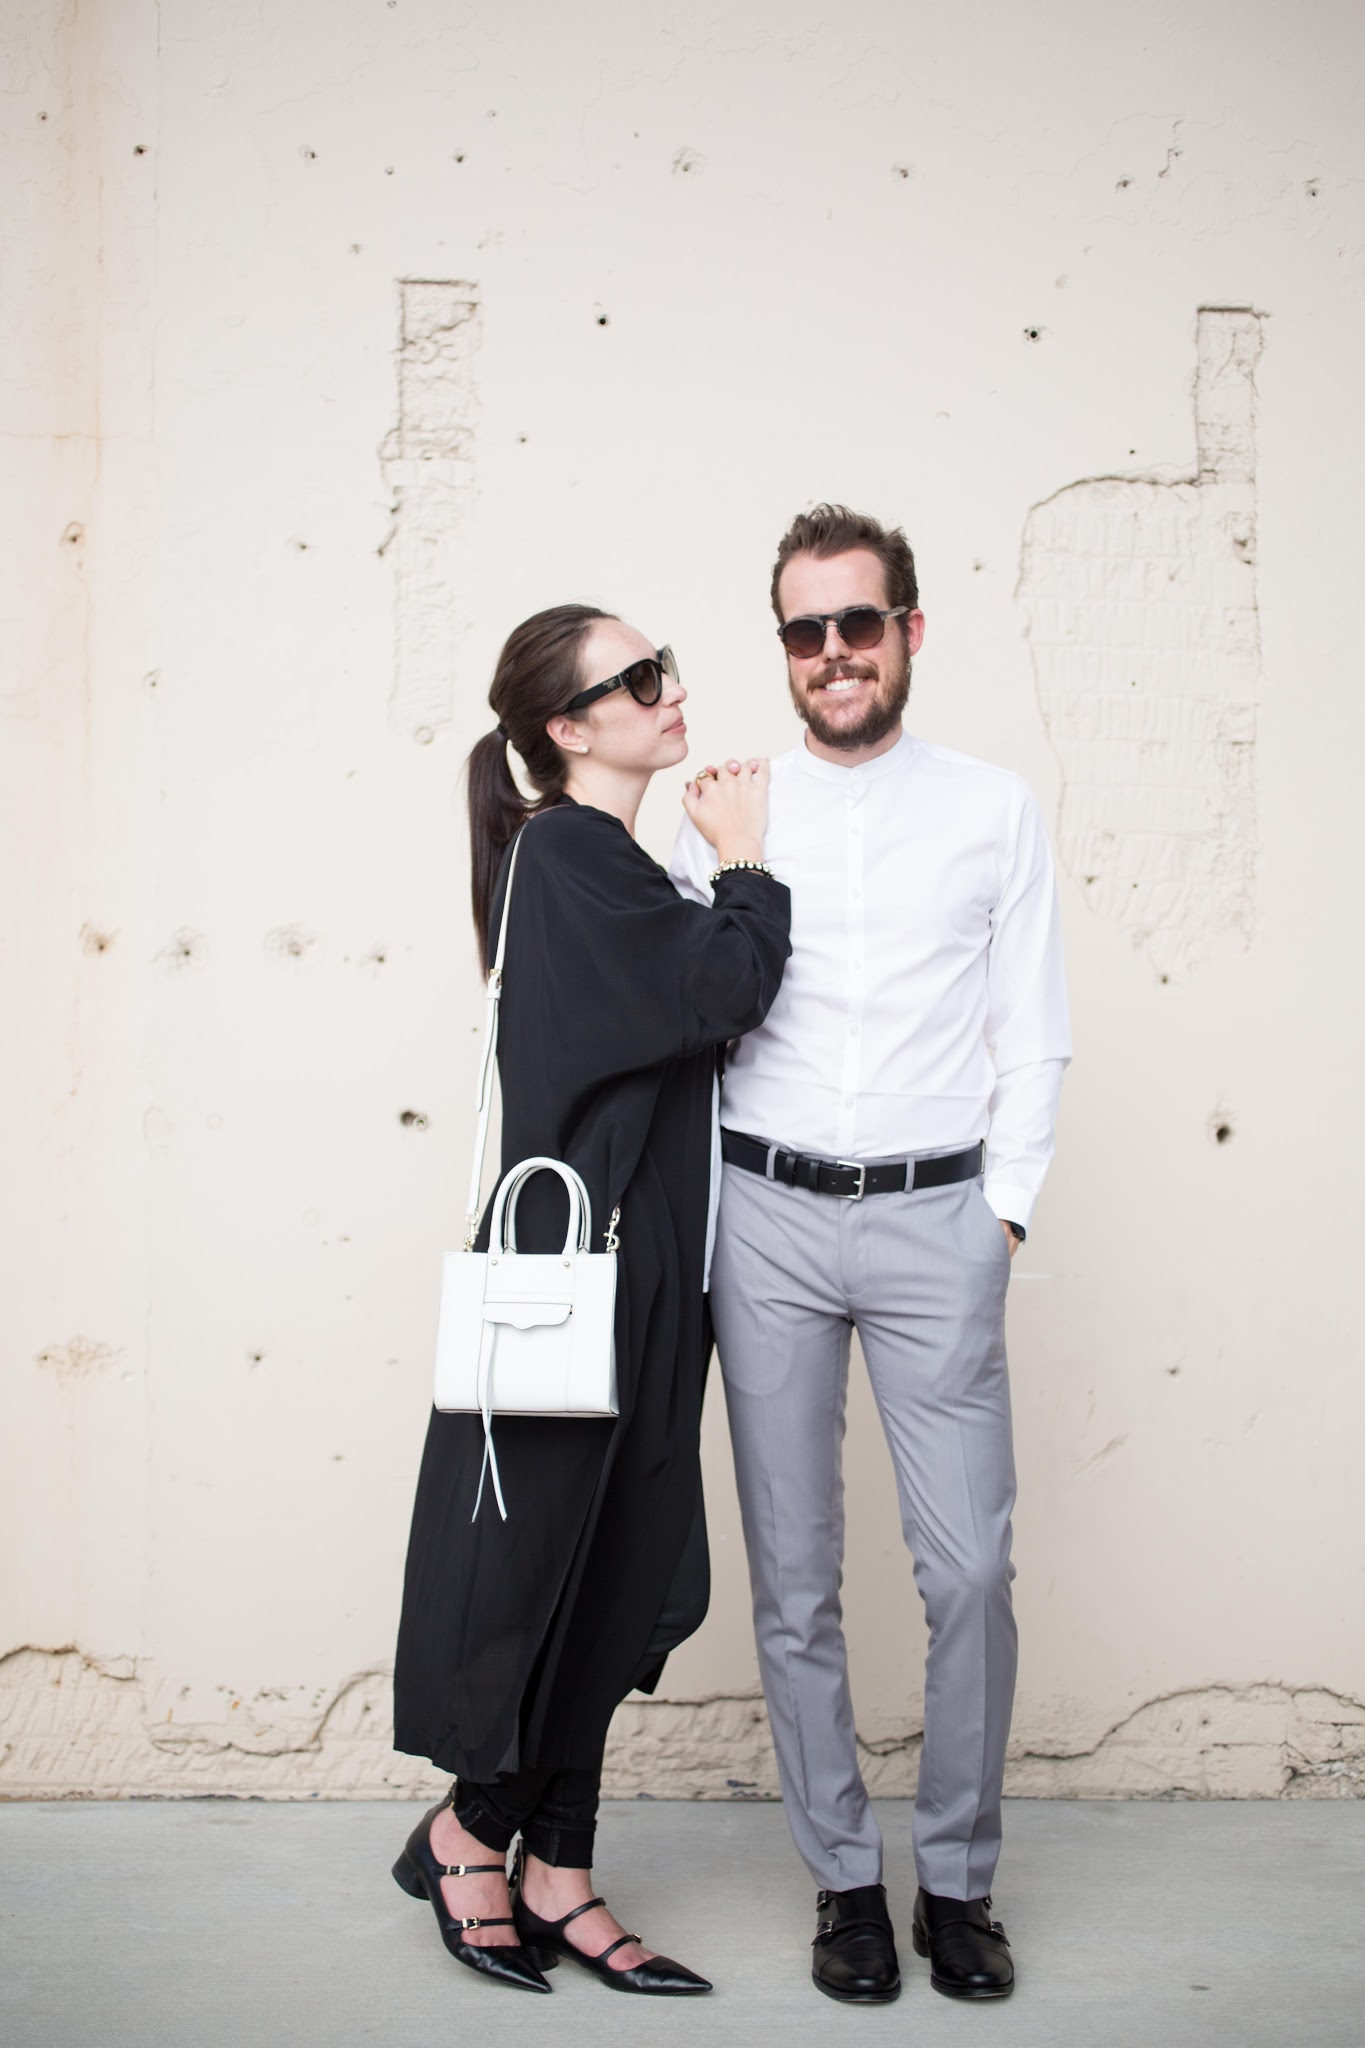 couples fashion style minimalist duster coat prada topman zara